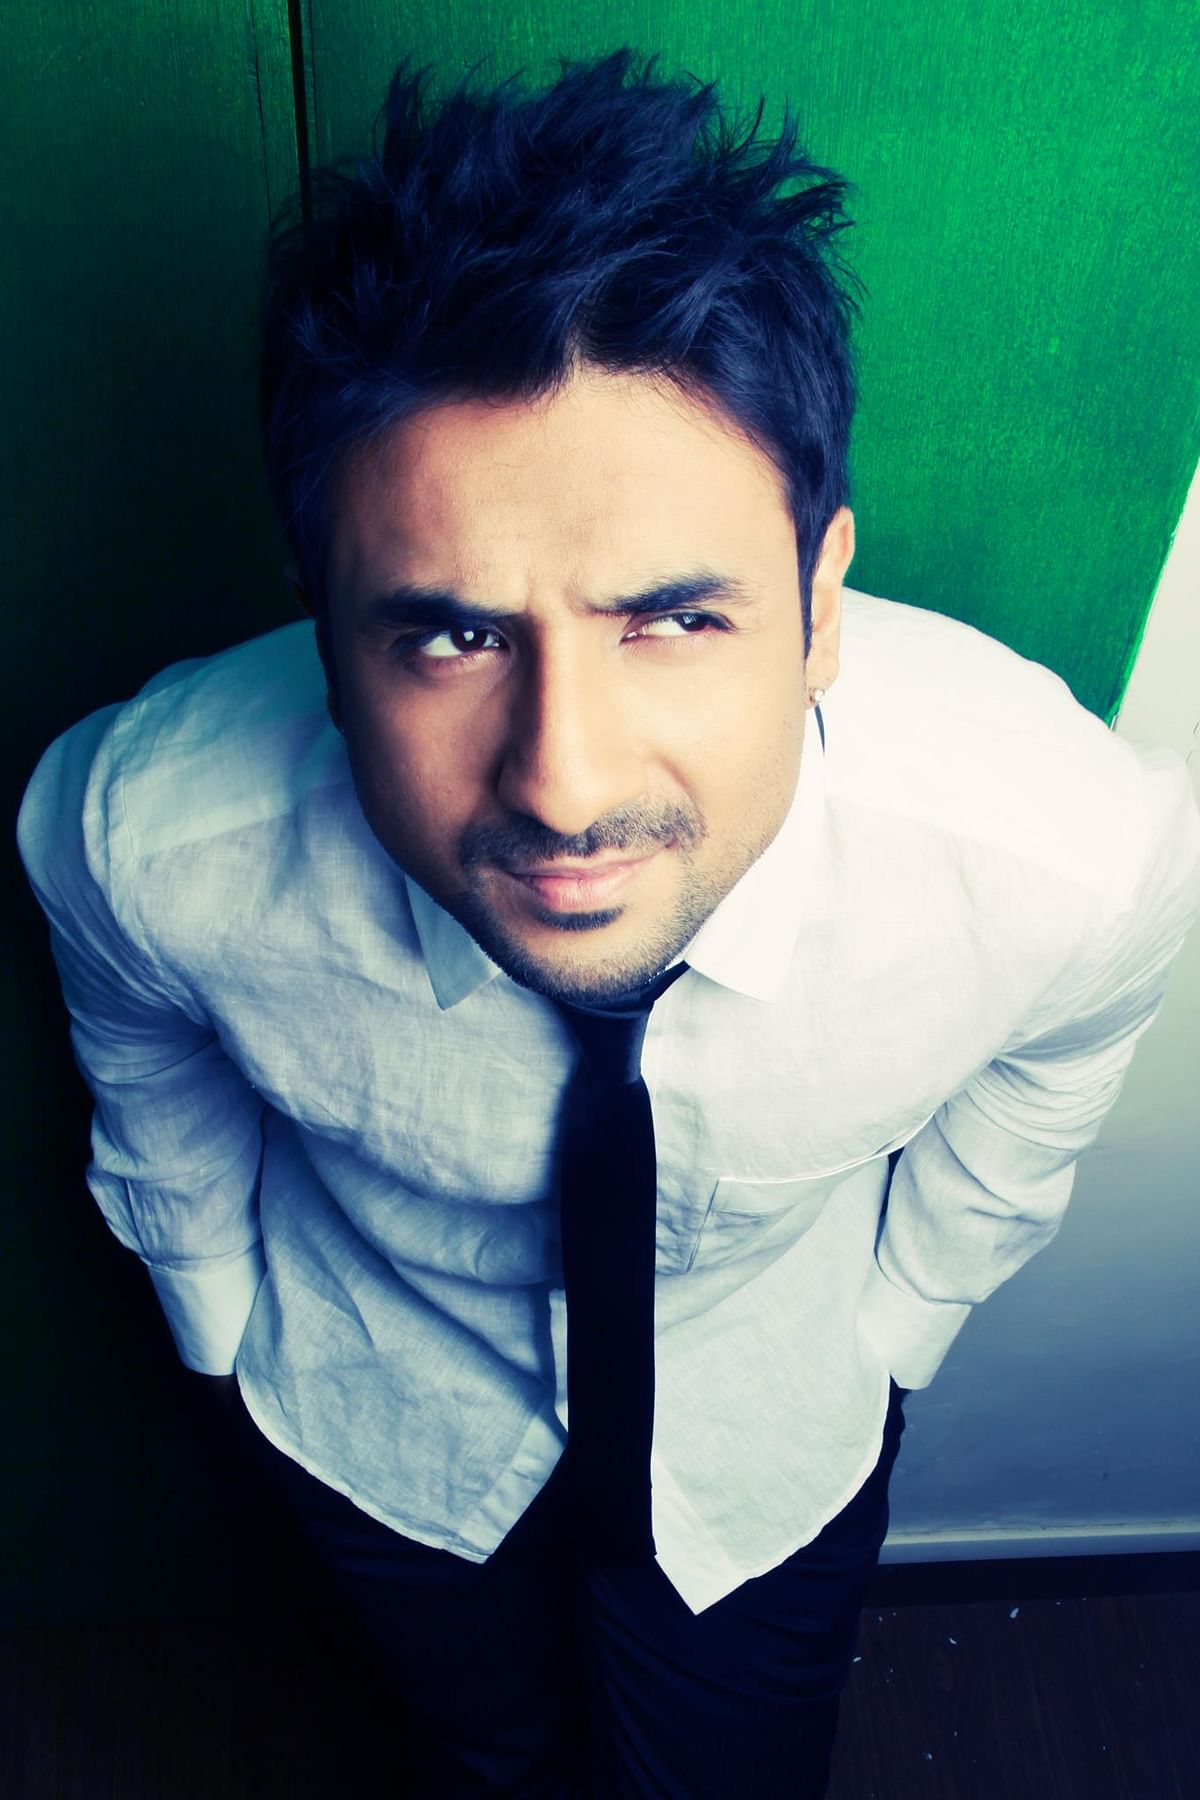 Comedian Vir Das stands his ground in the open letter published on his Facebook page (Photo: Facebook/VirDas)